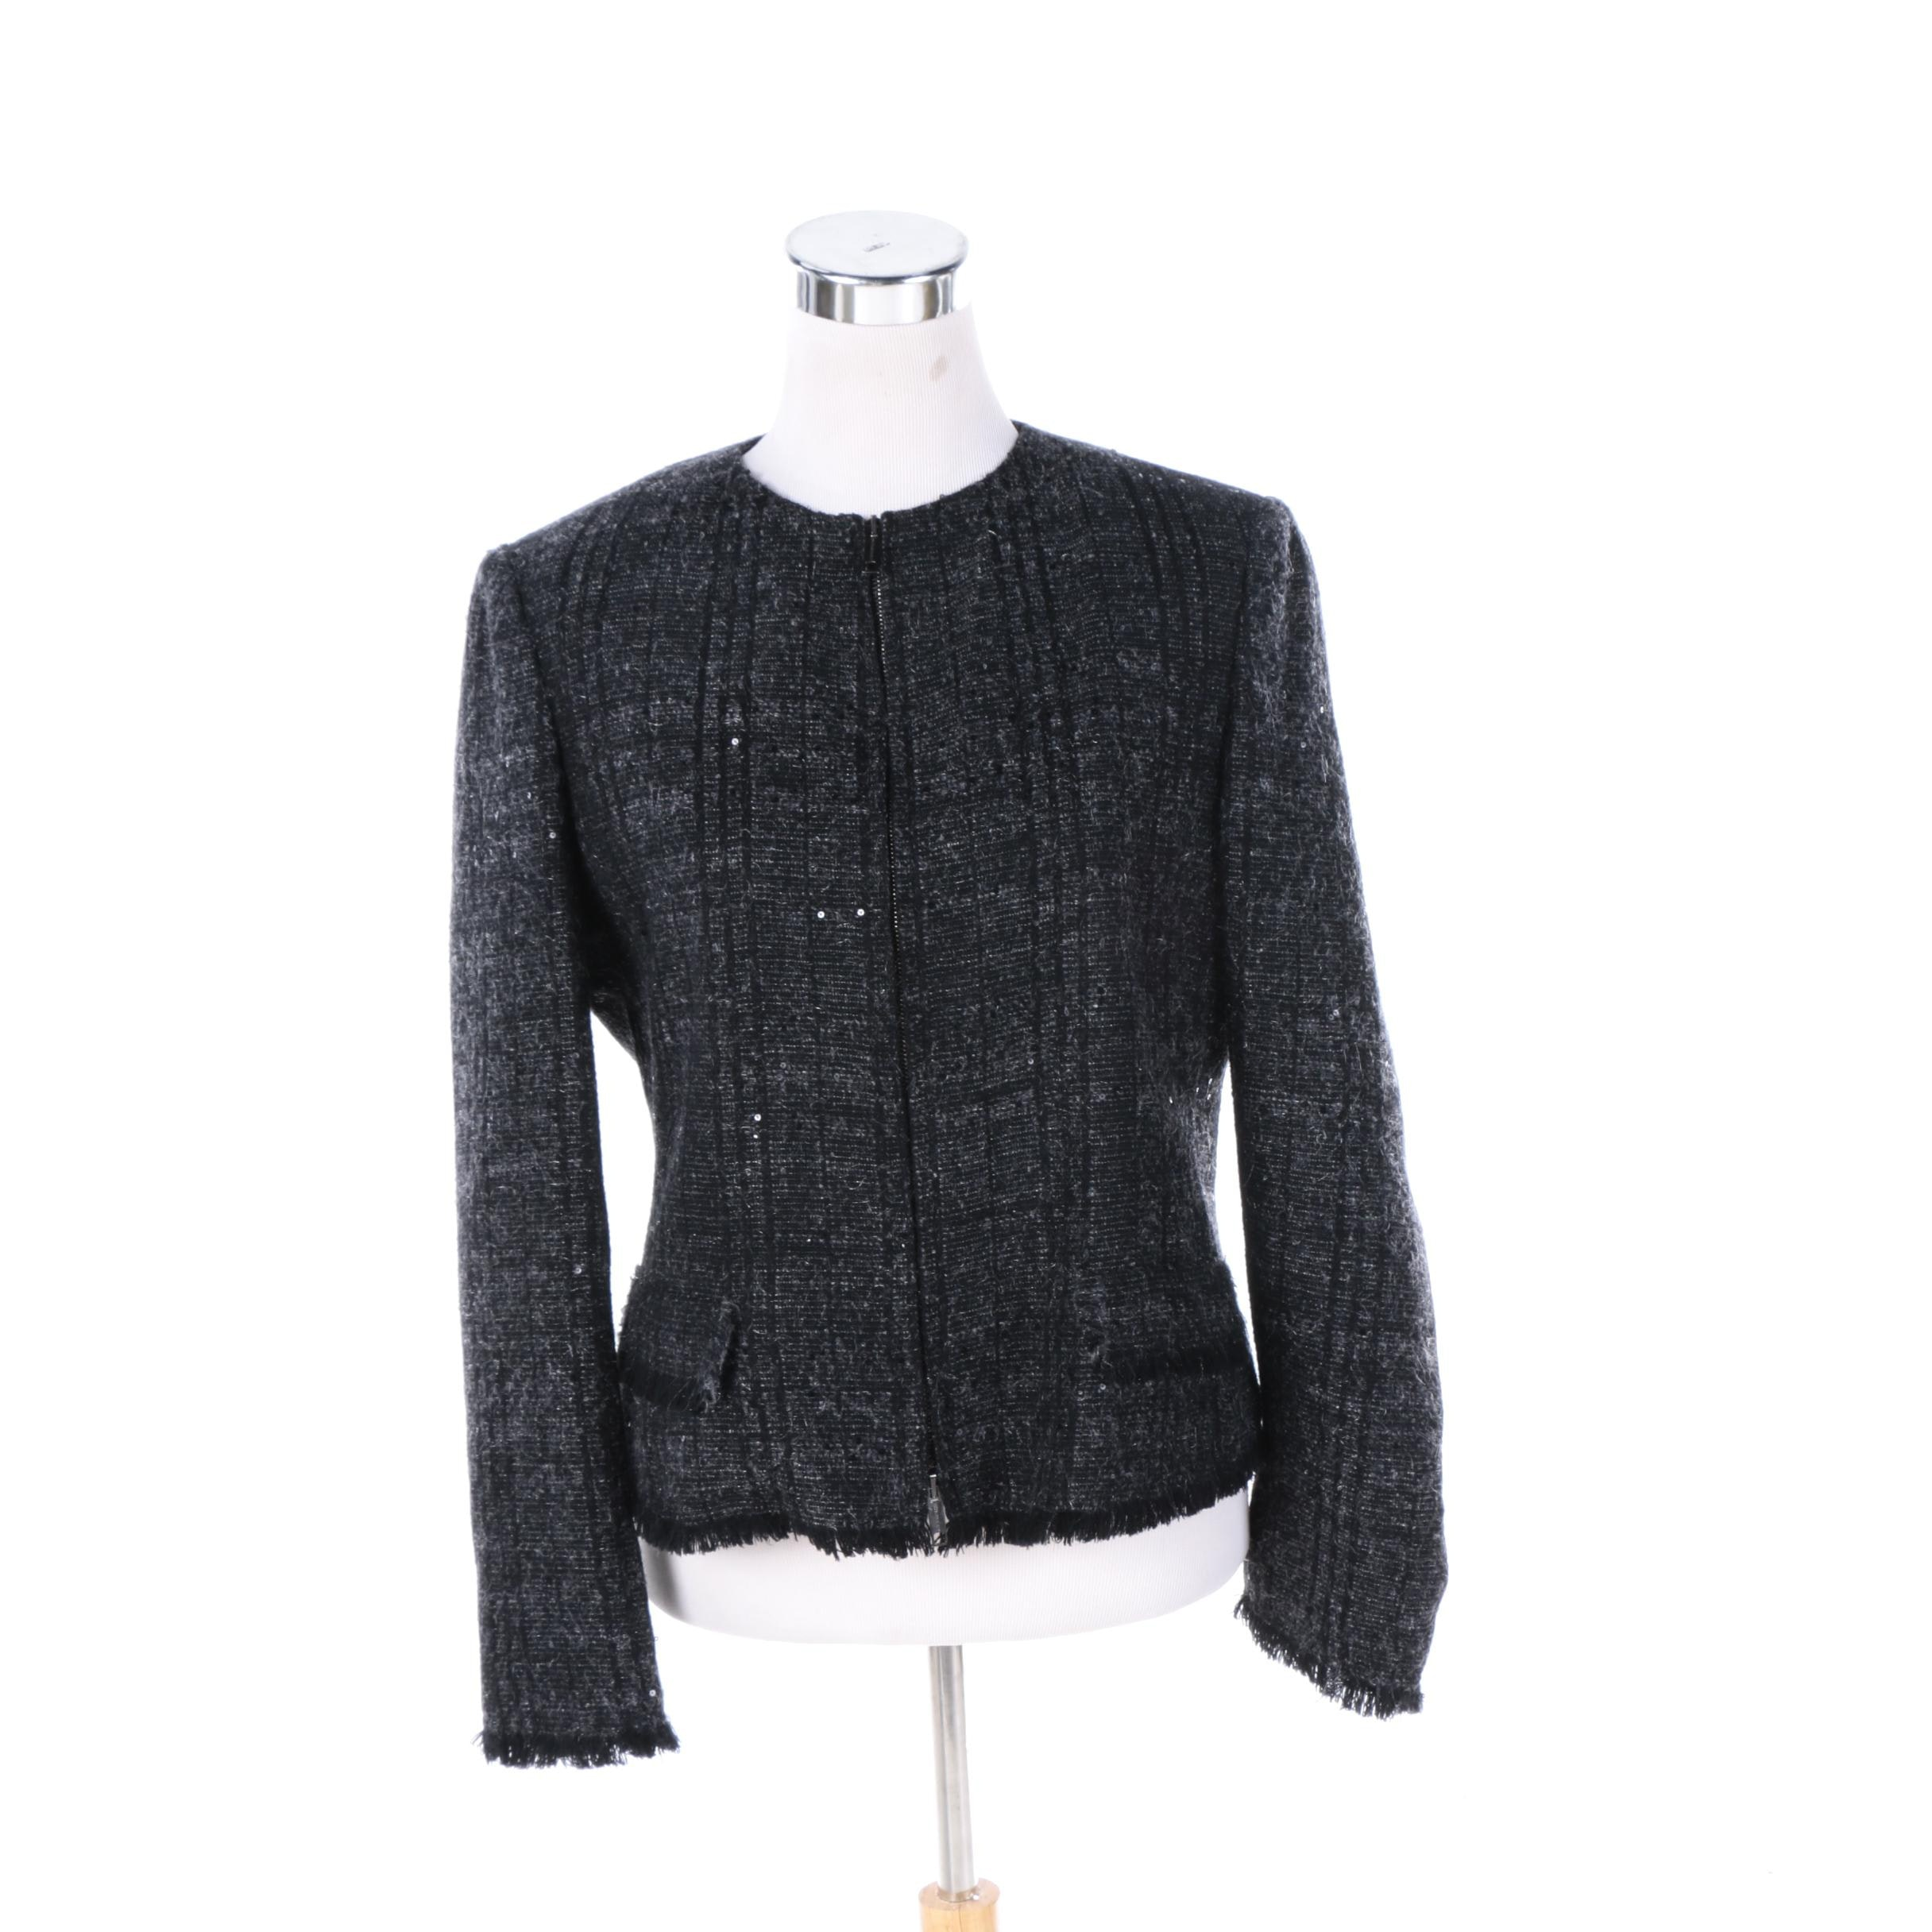 Women's Burberry London Wool Blend Suit Jacket with Sequin Embellishments